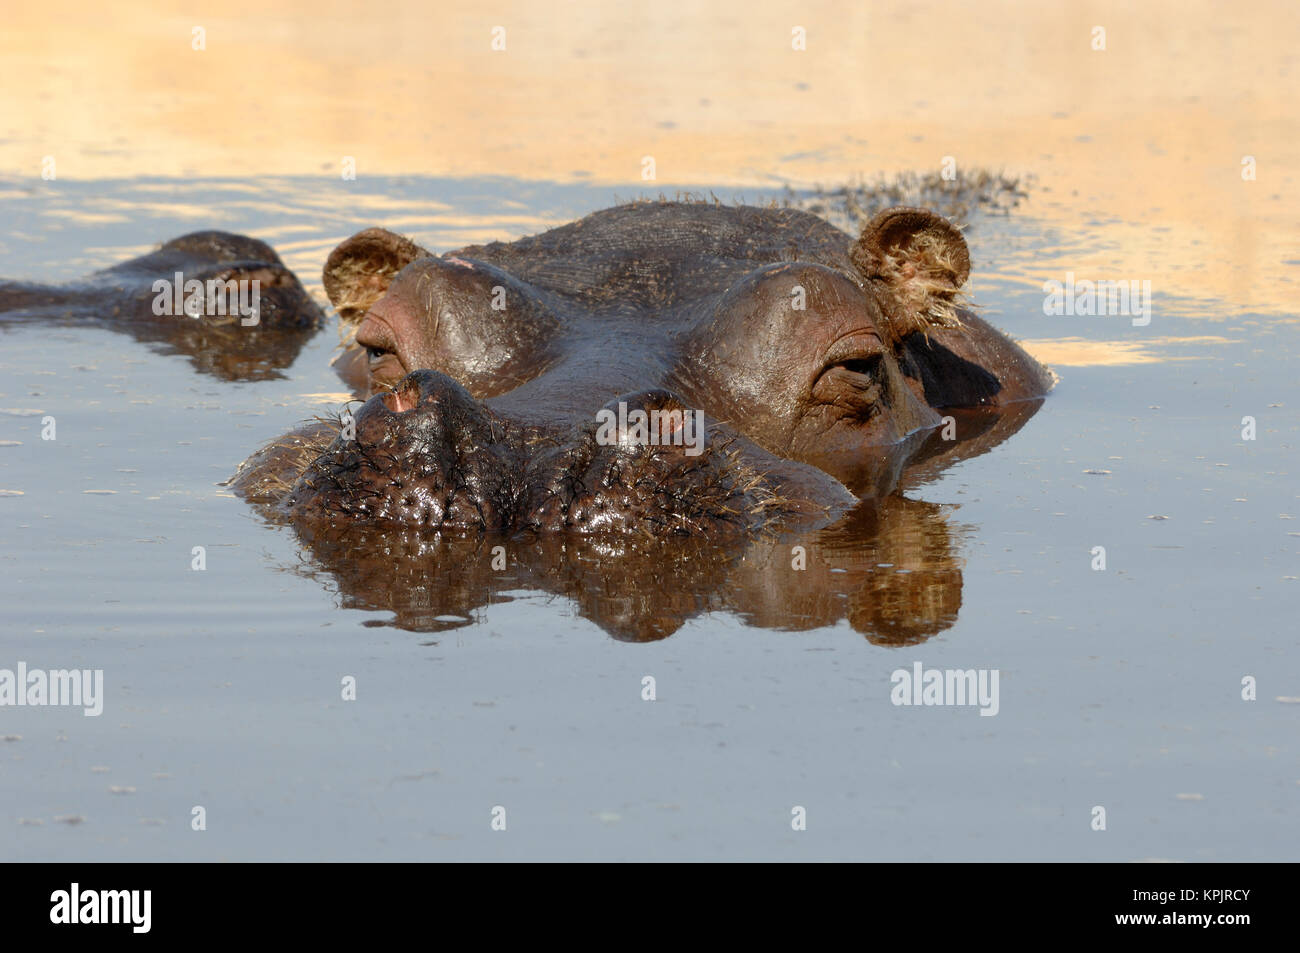 Submerged or Wallowing Hippo or Hippopotamus amphibius with Head Above Water - Stock Image